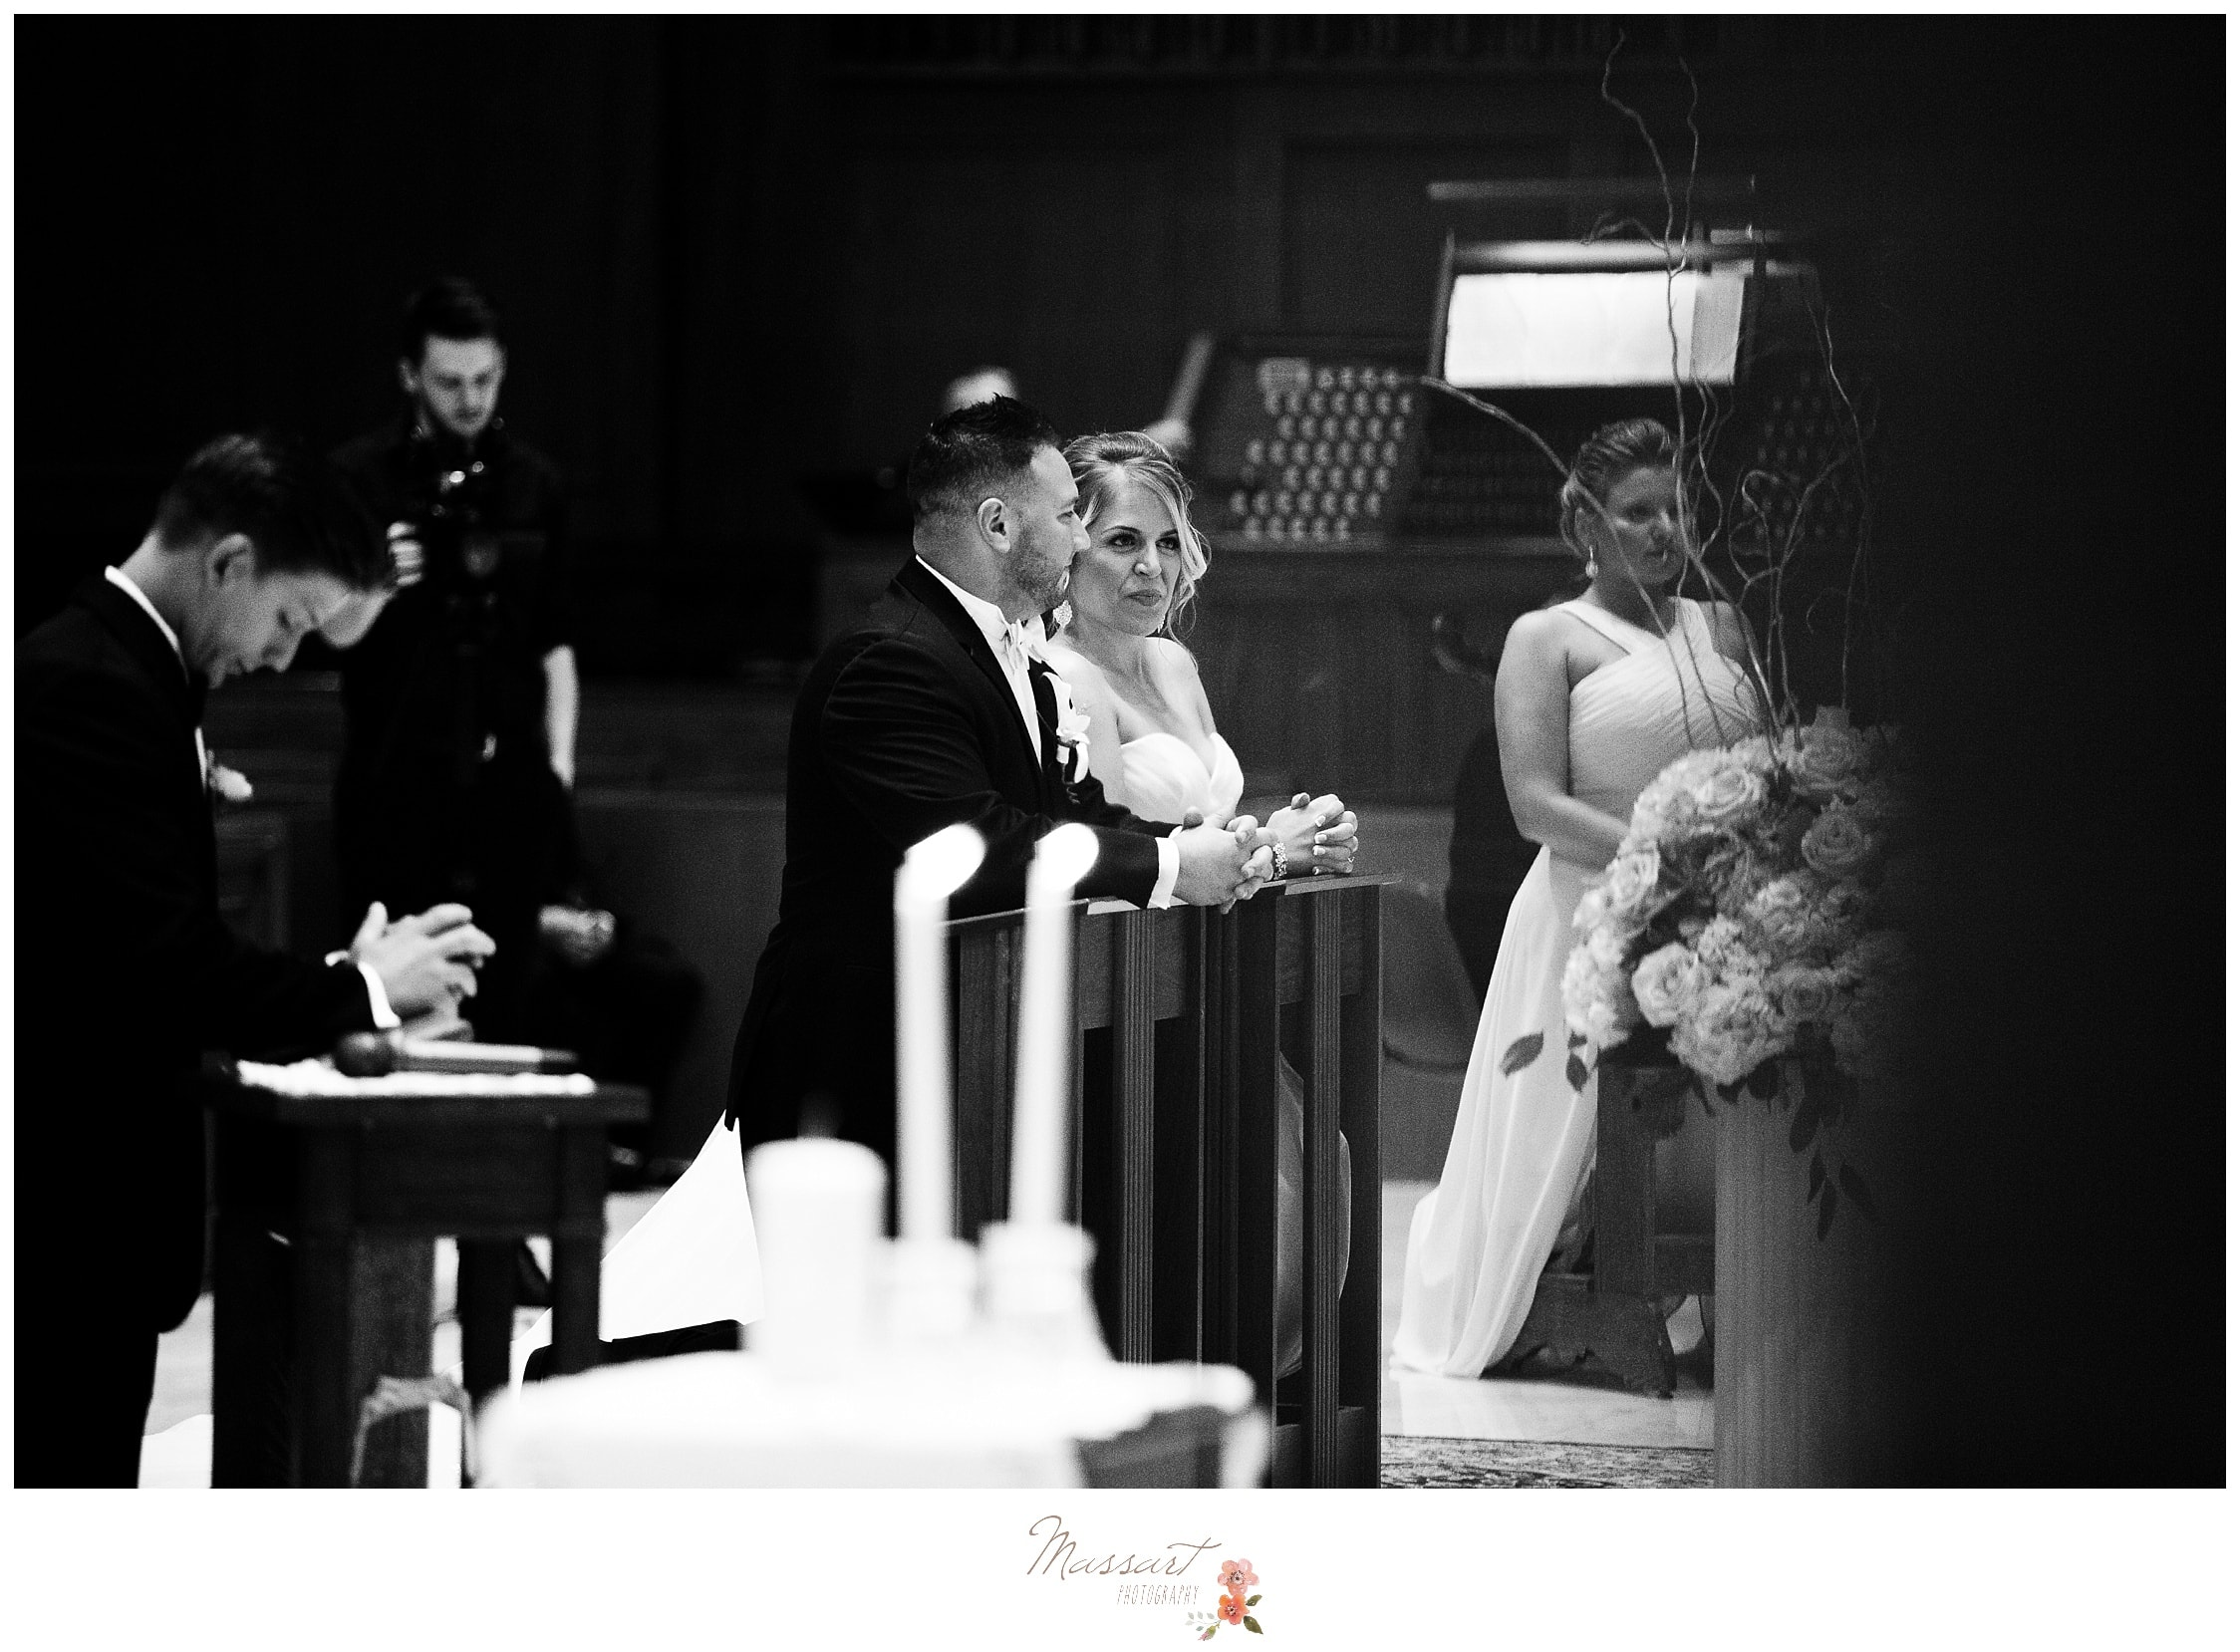 Bride and groom complete their wedding rituals during their ceremony photographed by Massart Photography Rhode Island